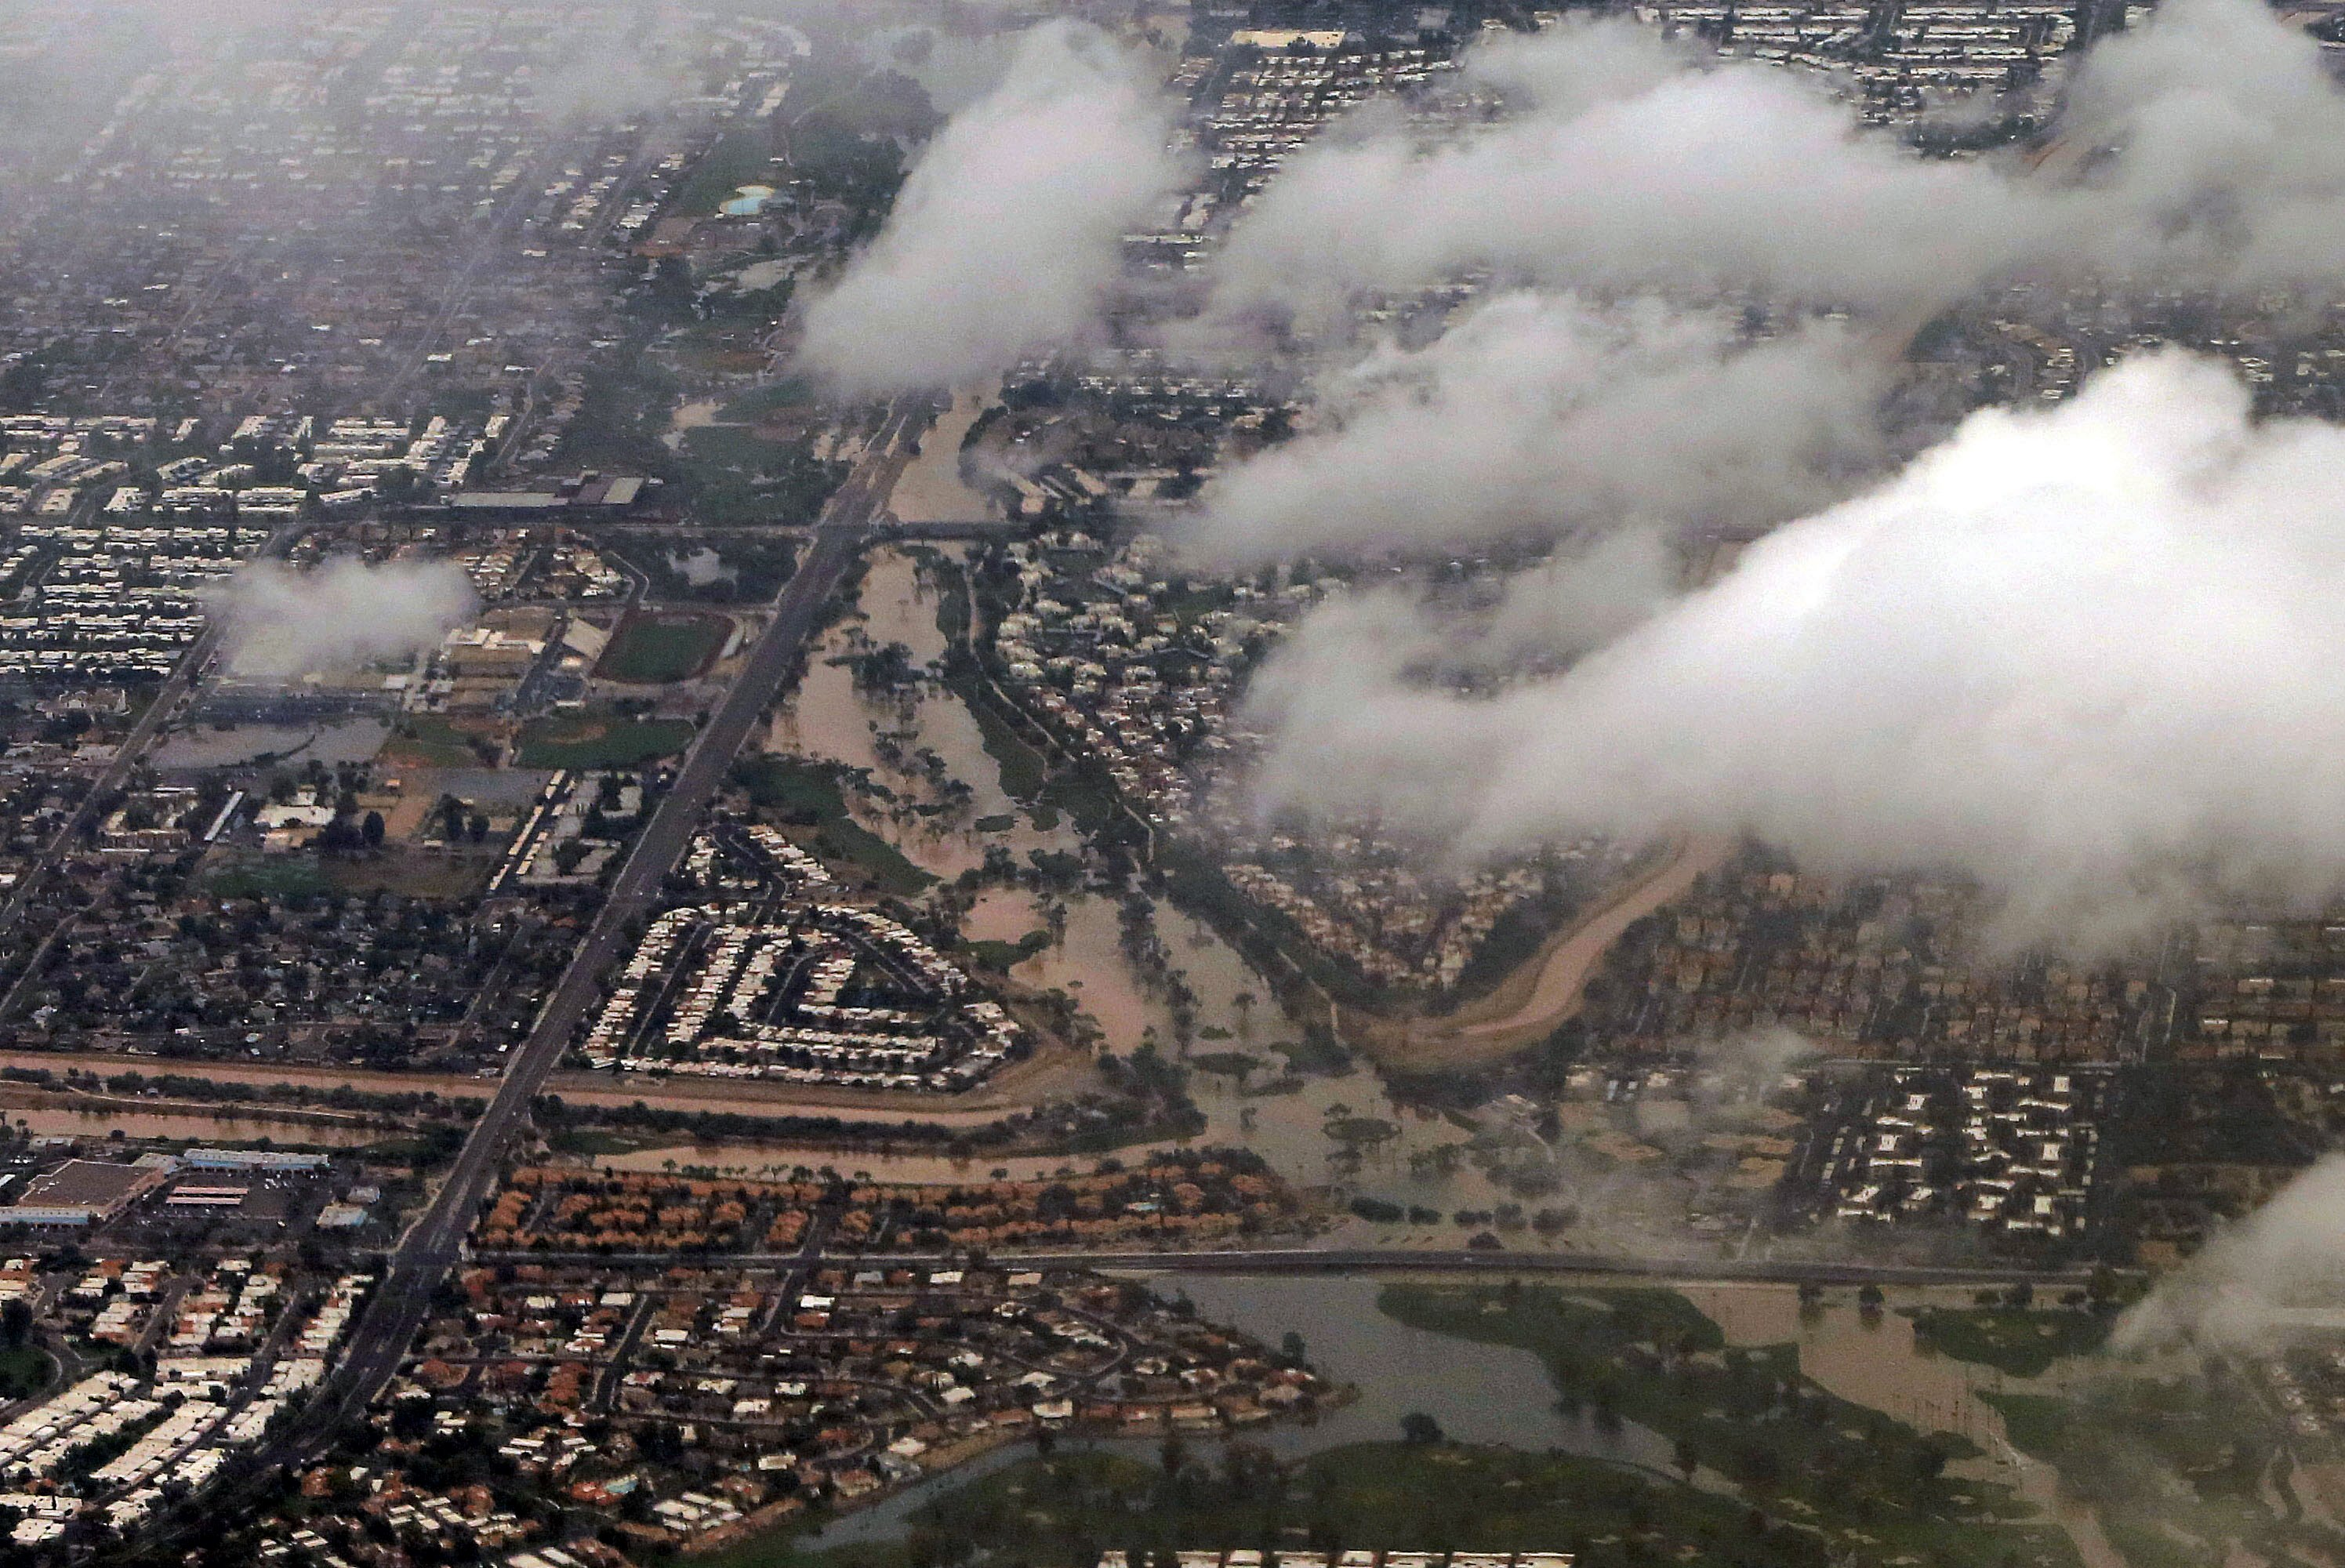 A section of Scottsdale, Ariz. appears flooded following heavy rains that left motorists stranded during their morning commute, Sept. 8, 2014.